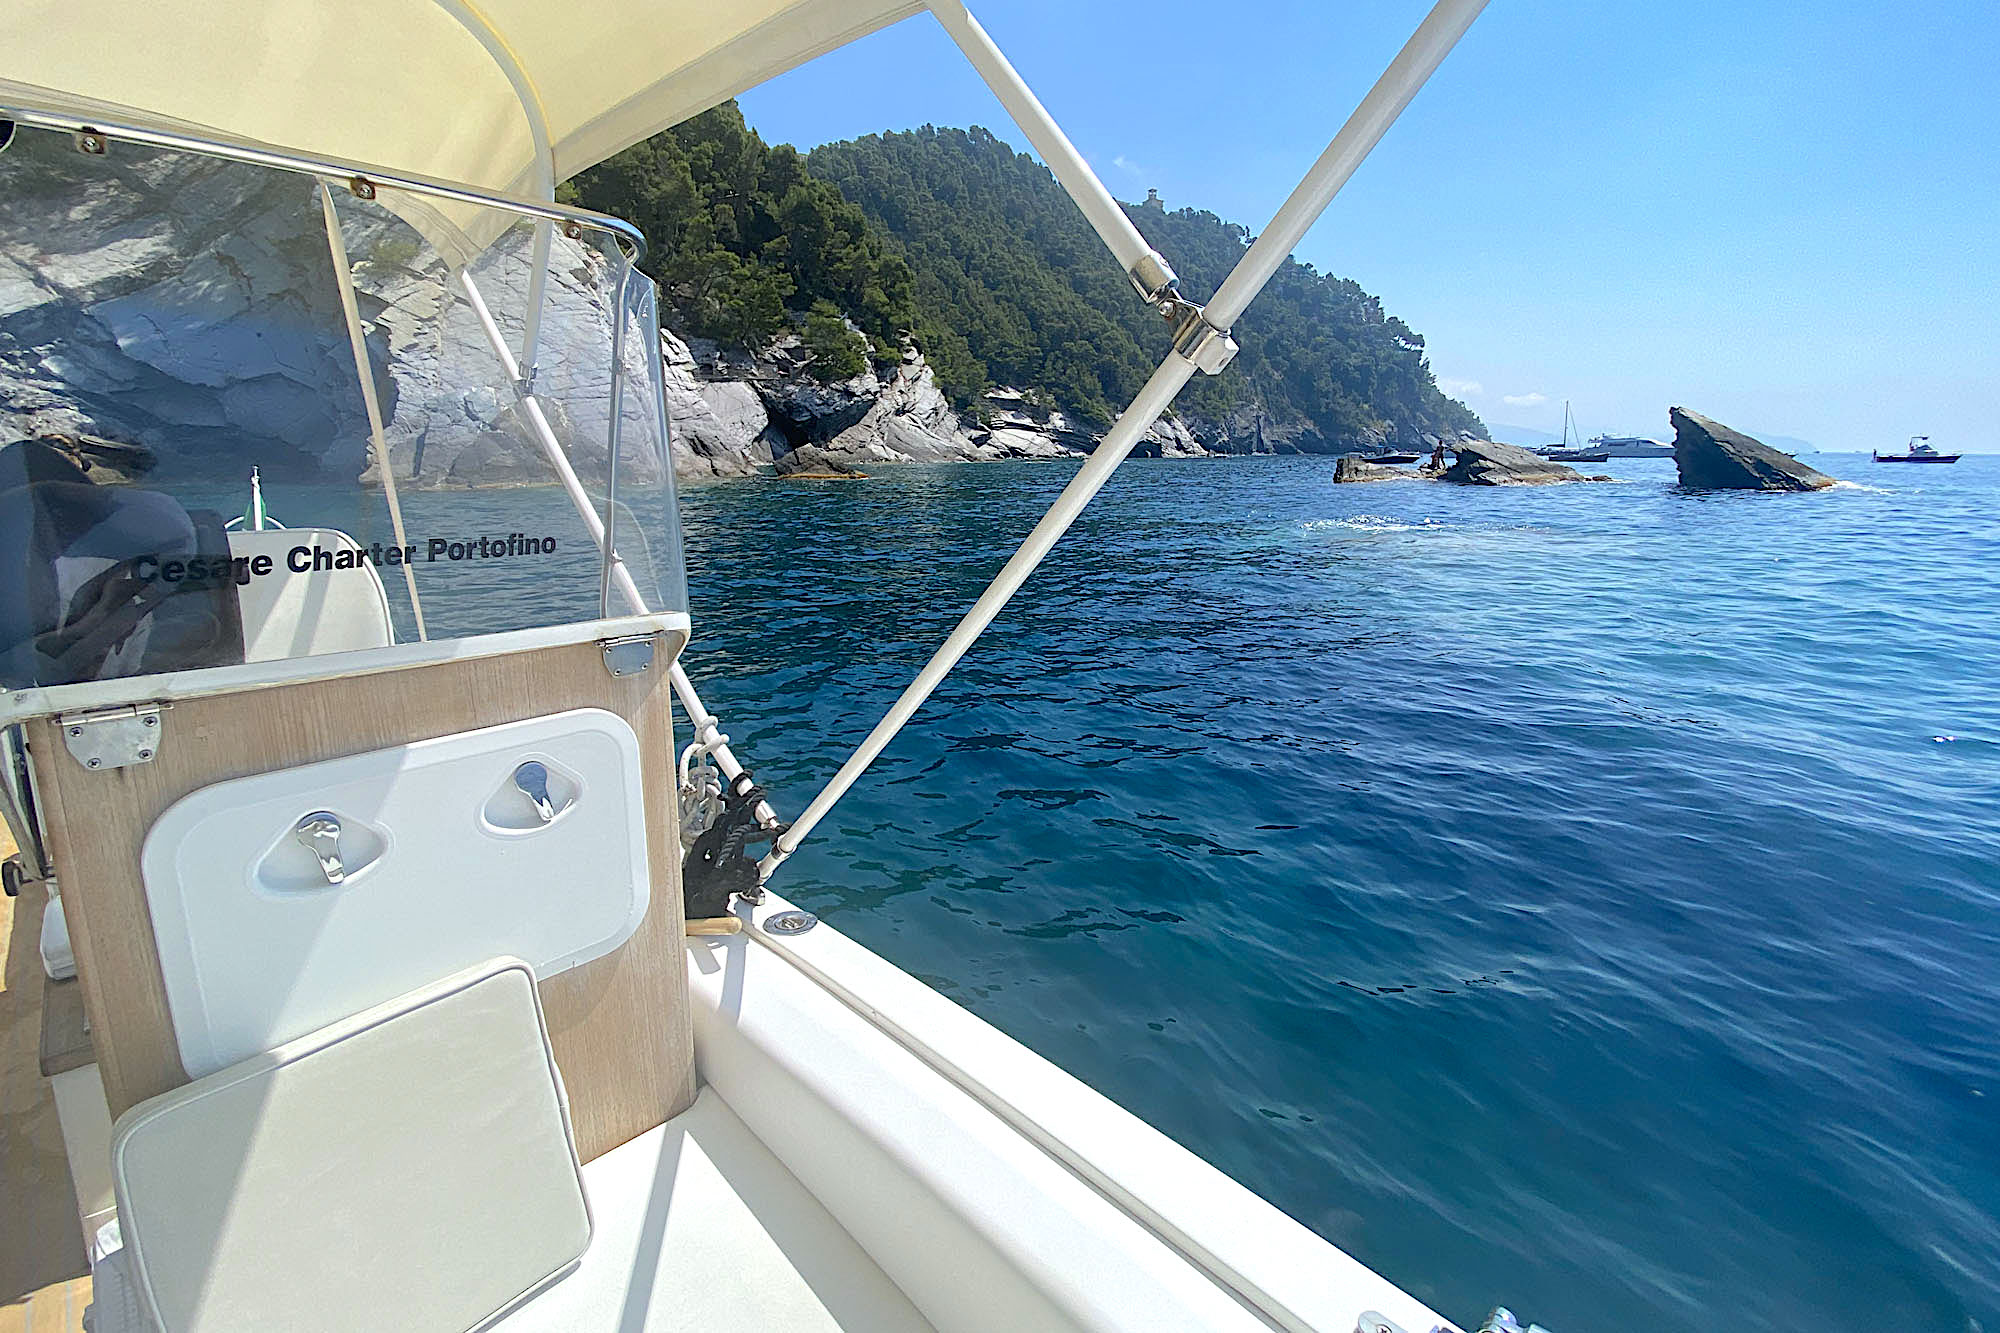 Cesare Charter Portofino - Tour Two Gulfs, swim and snorkeling